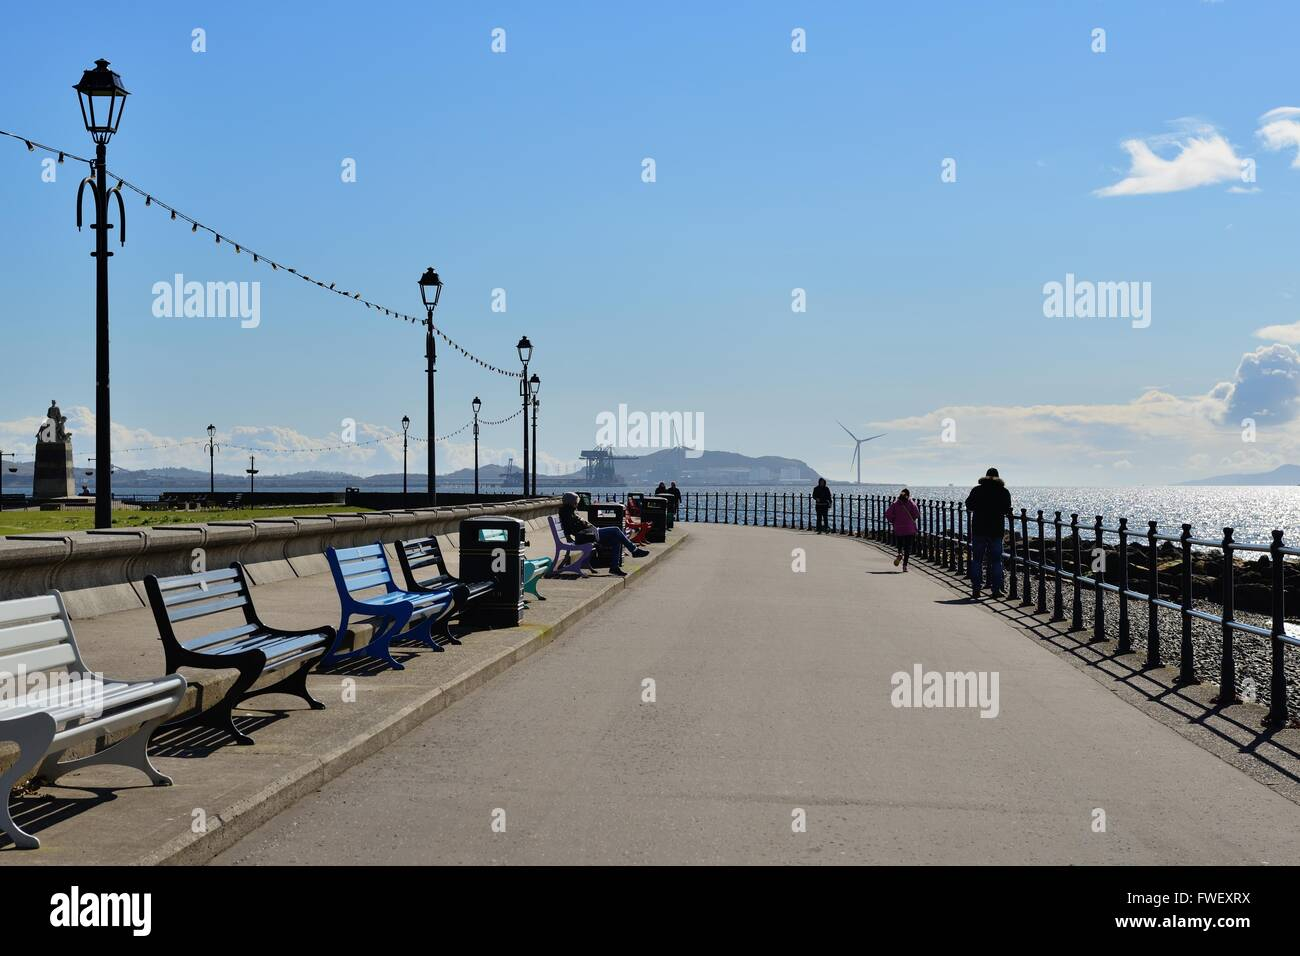 View of the Largs seafront promenade and Hunterston in the horizon. - Stock Image